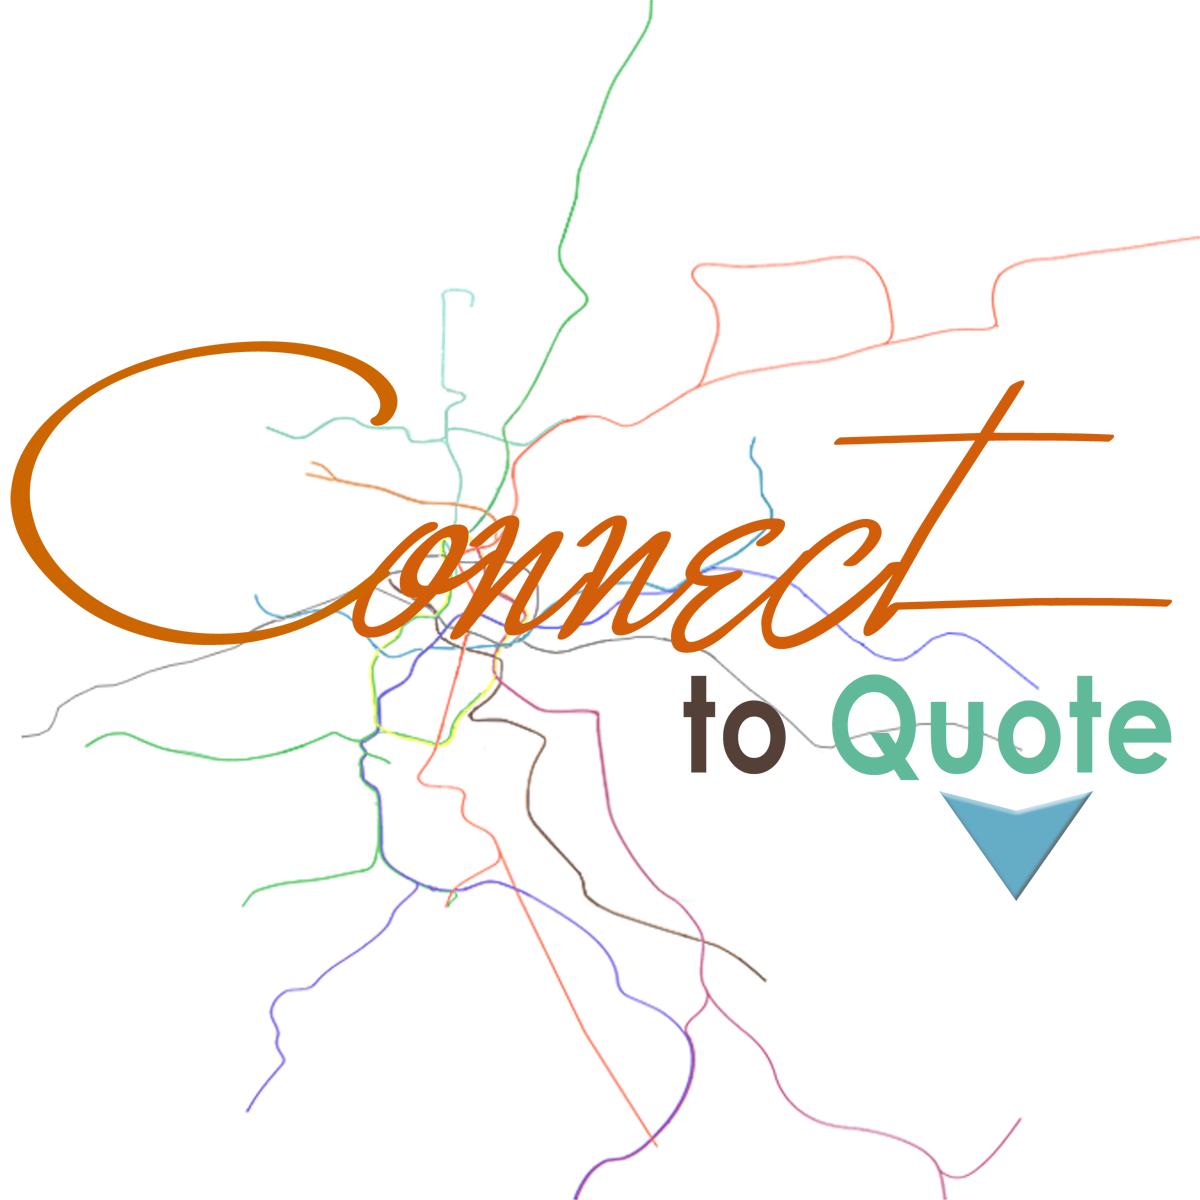 connect-to-quote-button-jpg-connectmarketing-re